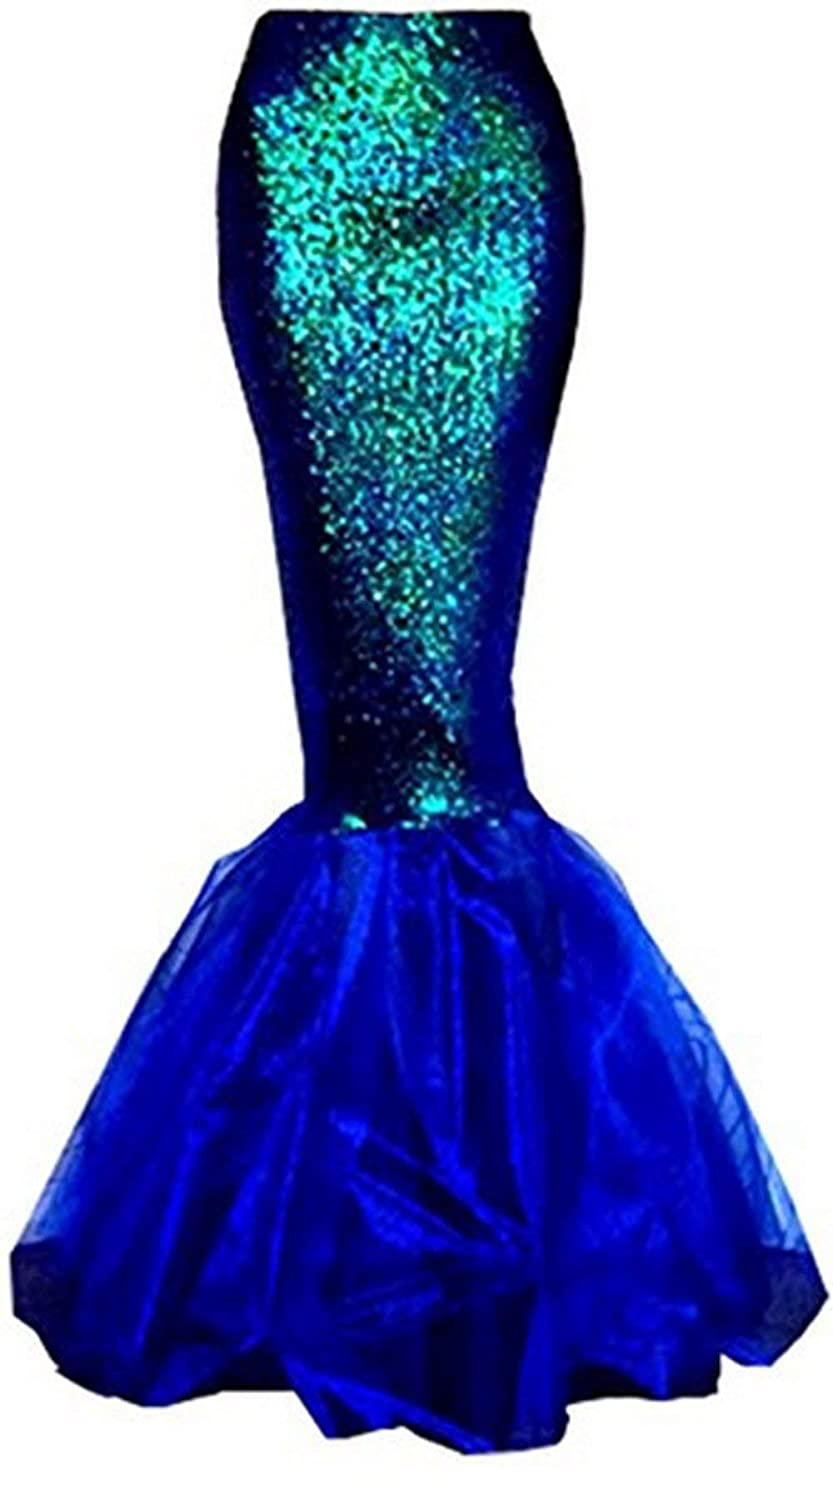 Women's Blue Sequins Asymmetric Mesh Panel Mermaid Costume Skirt - DeluxeAdultCostumes.com